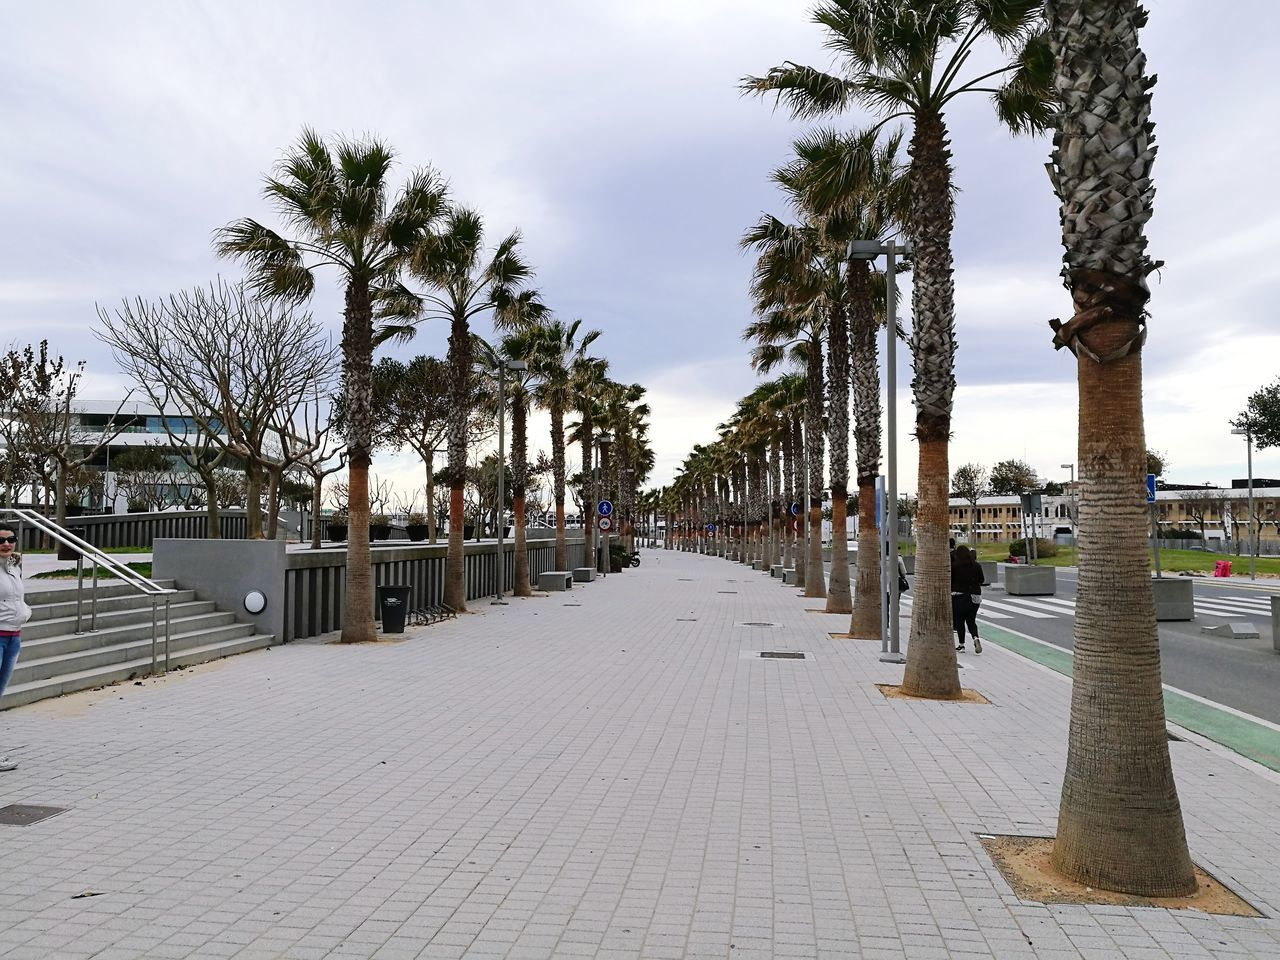 tree, the way forward, outdoors, palm tree, day, sky, walkway, built structure, water, no people, architecture, nature